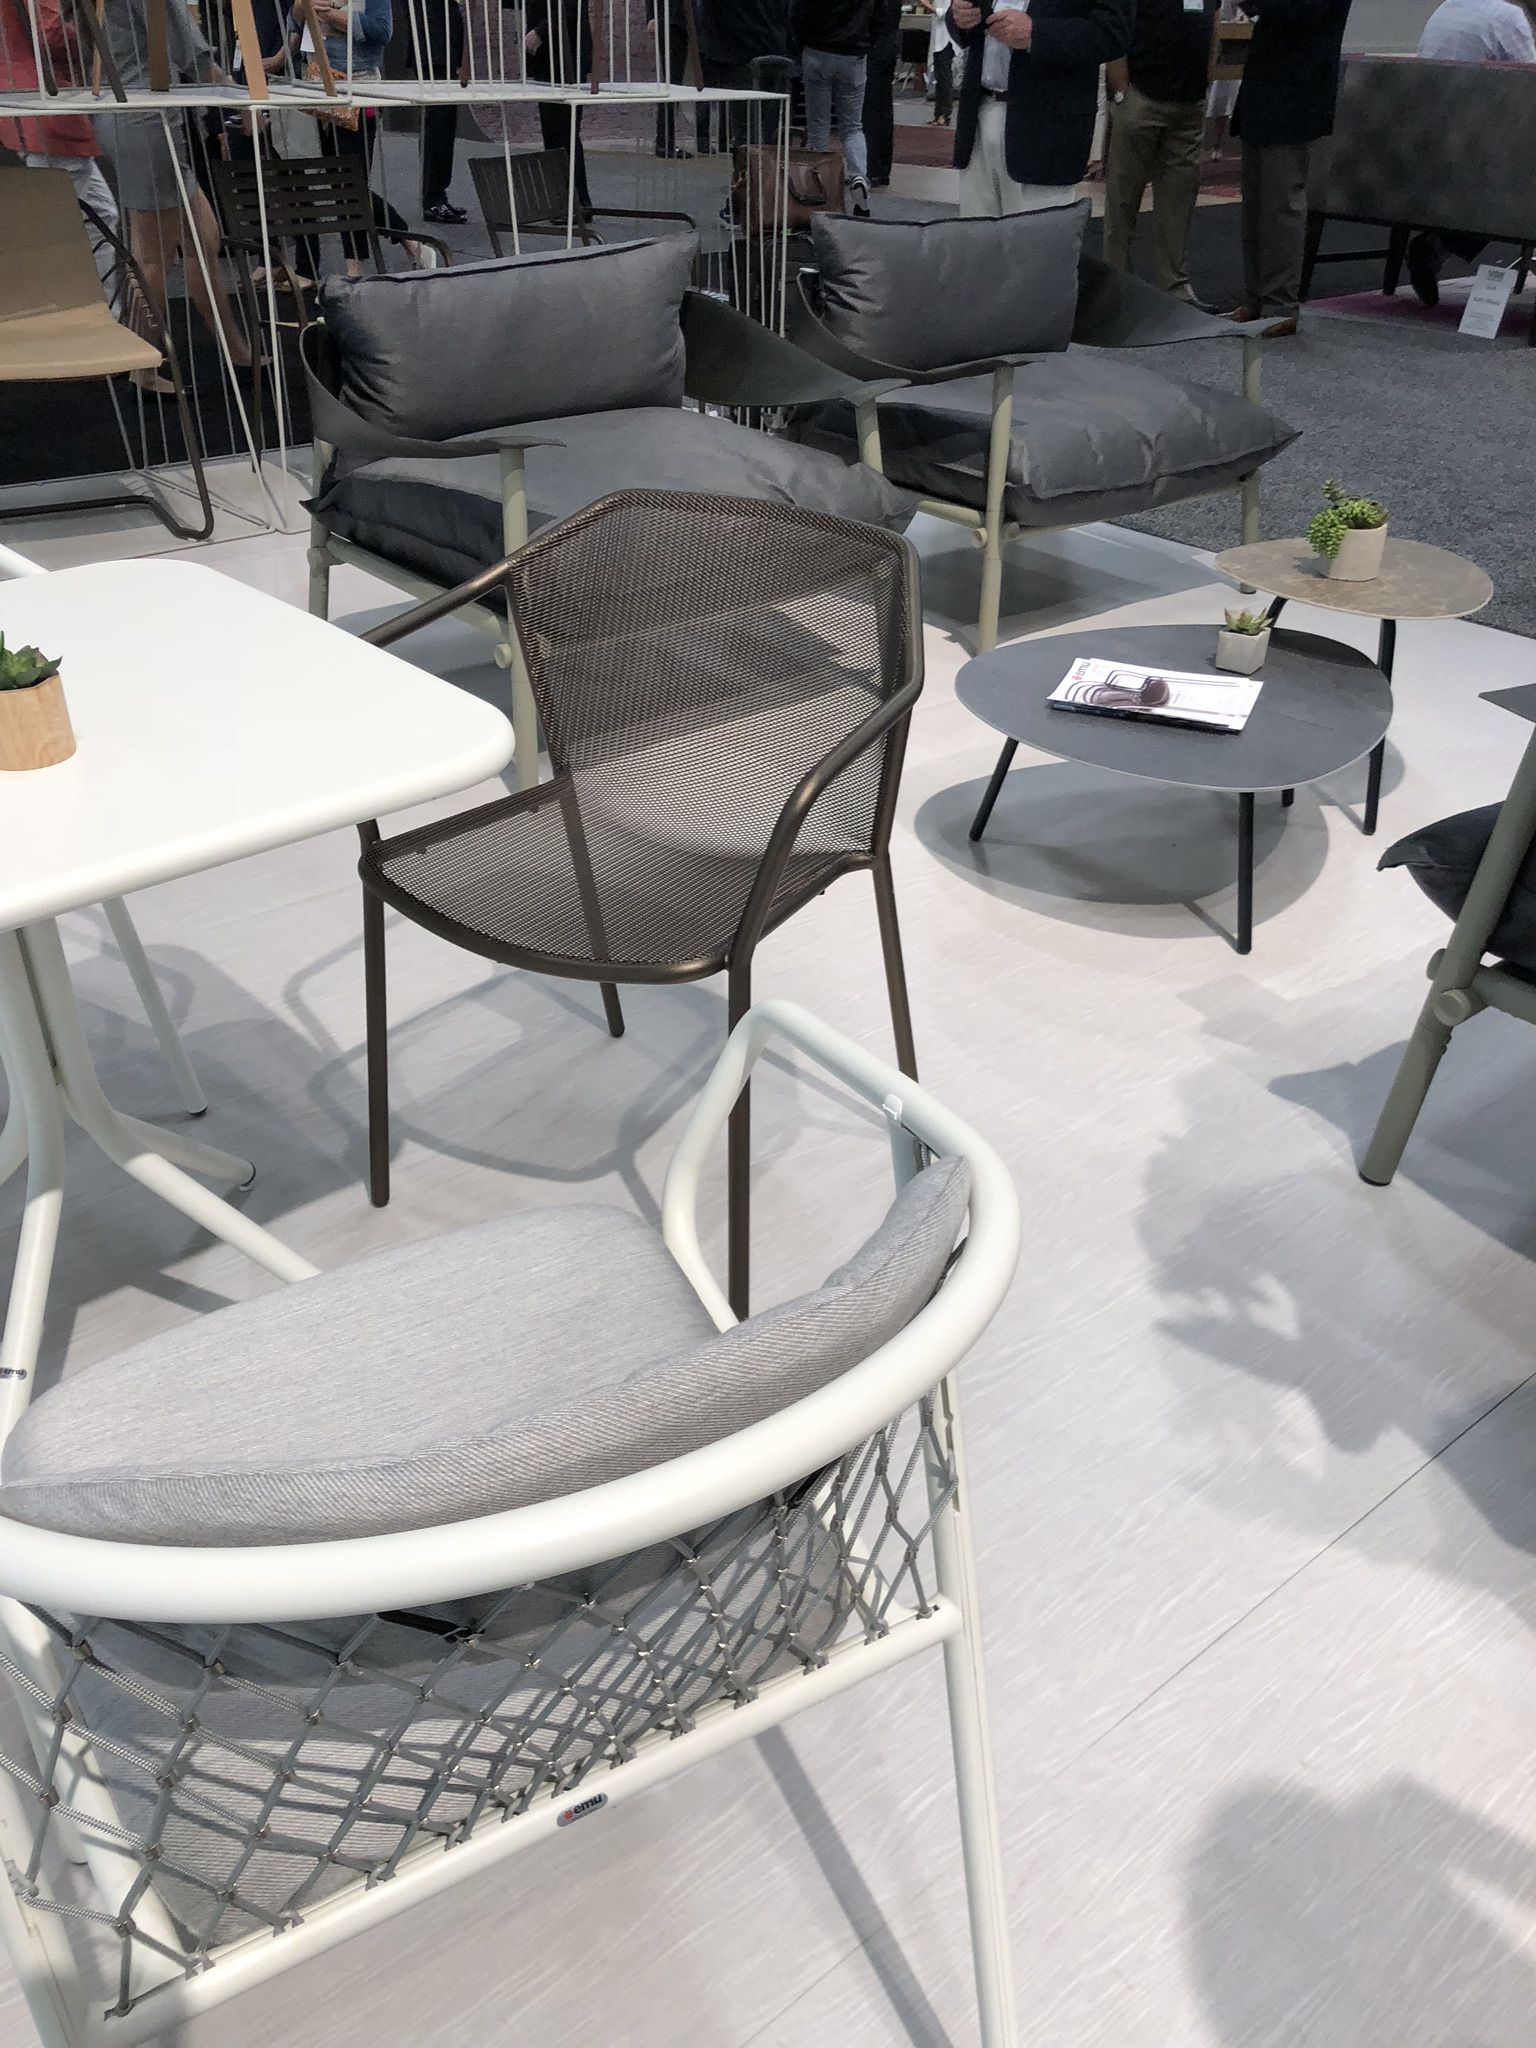 Nice inexpensive outdoor seating with without memory foam cushion soooo comfortable